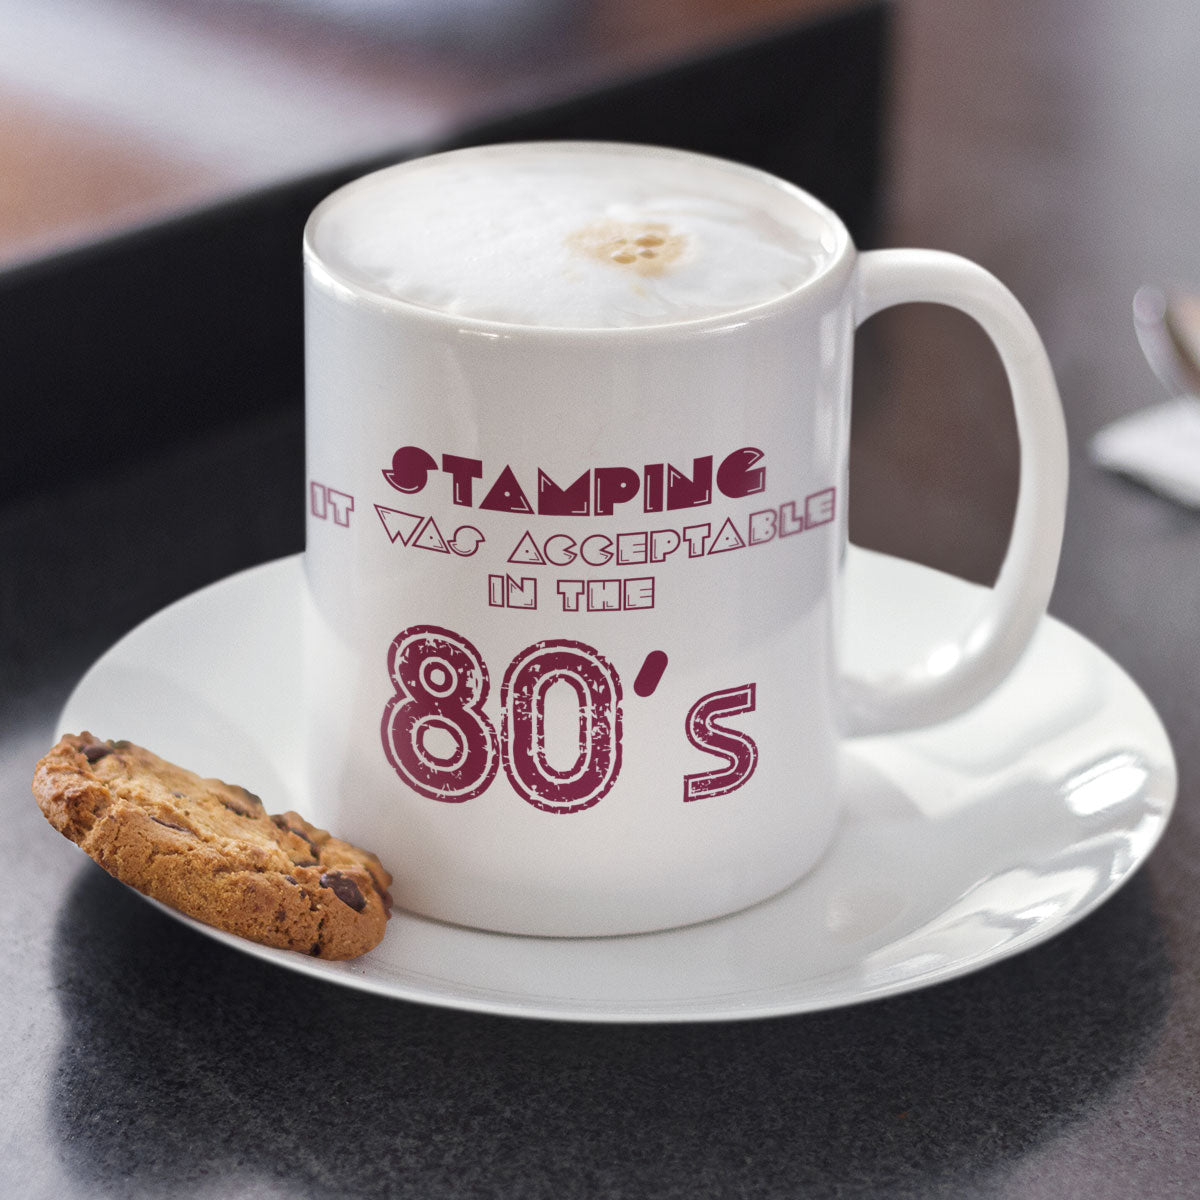 Acceptable In The 80s Rugby Mug